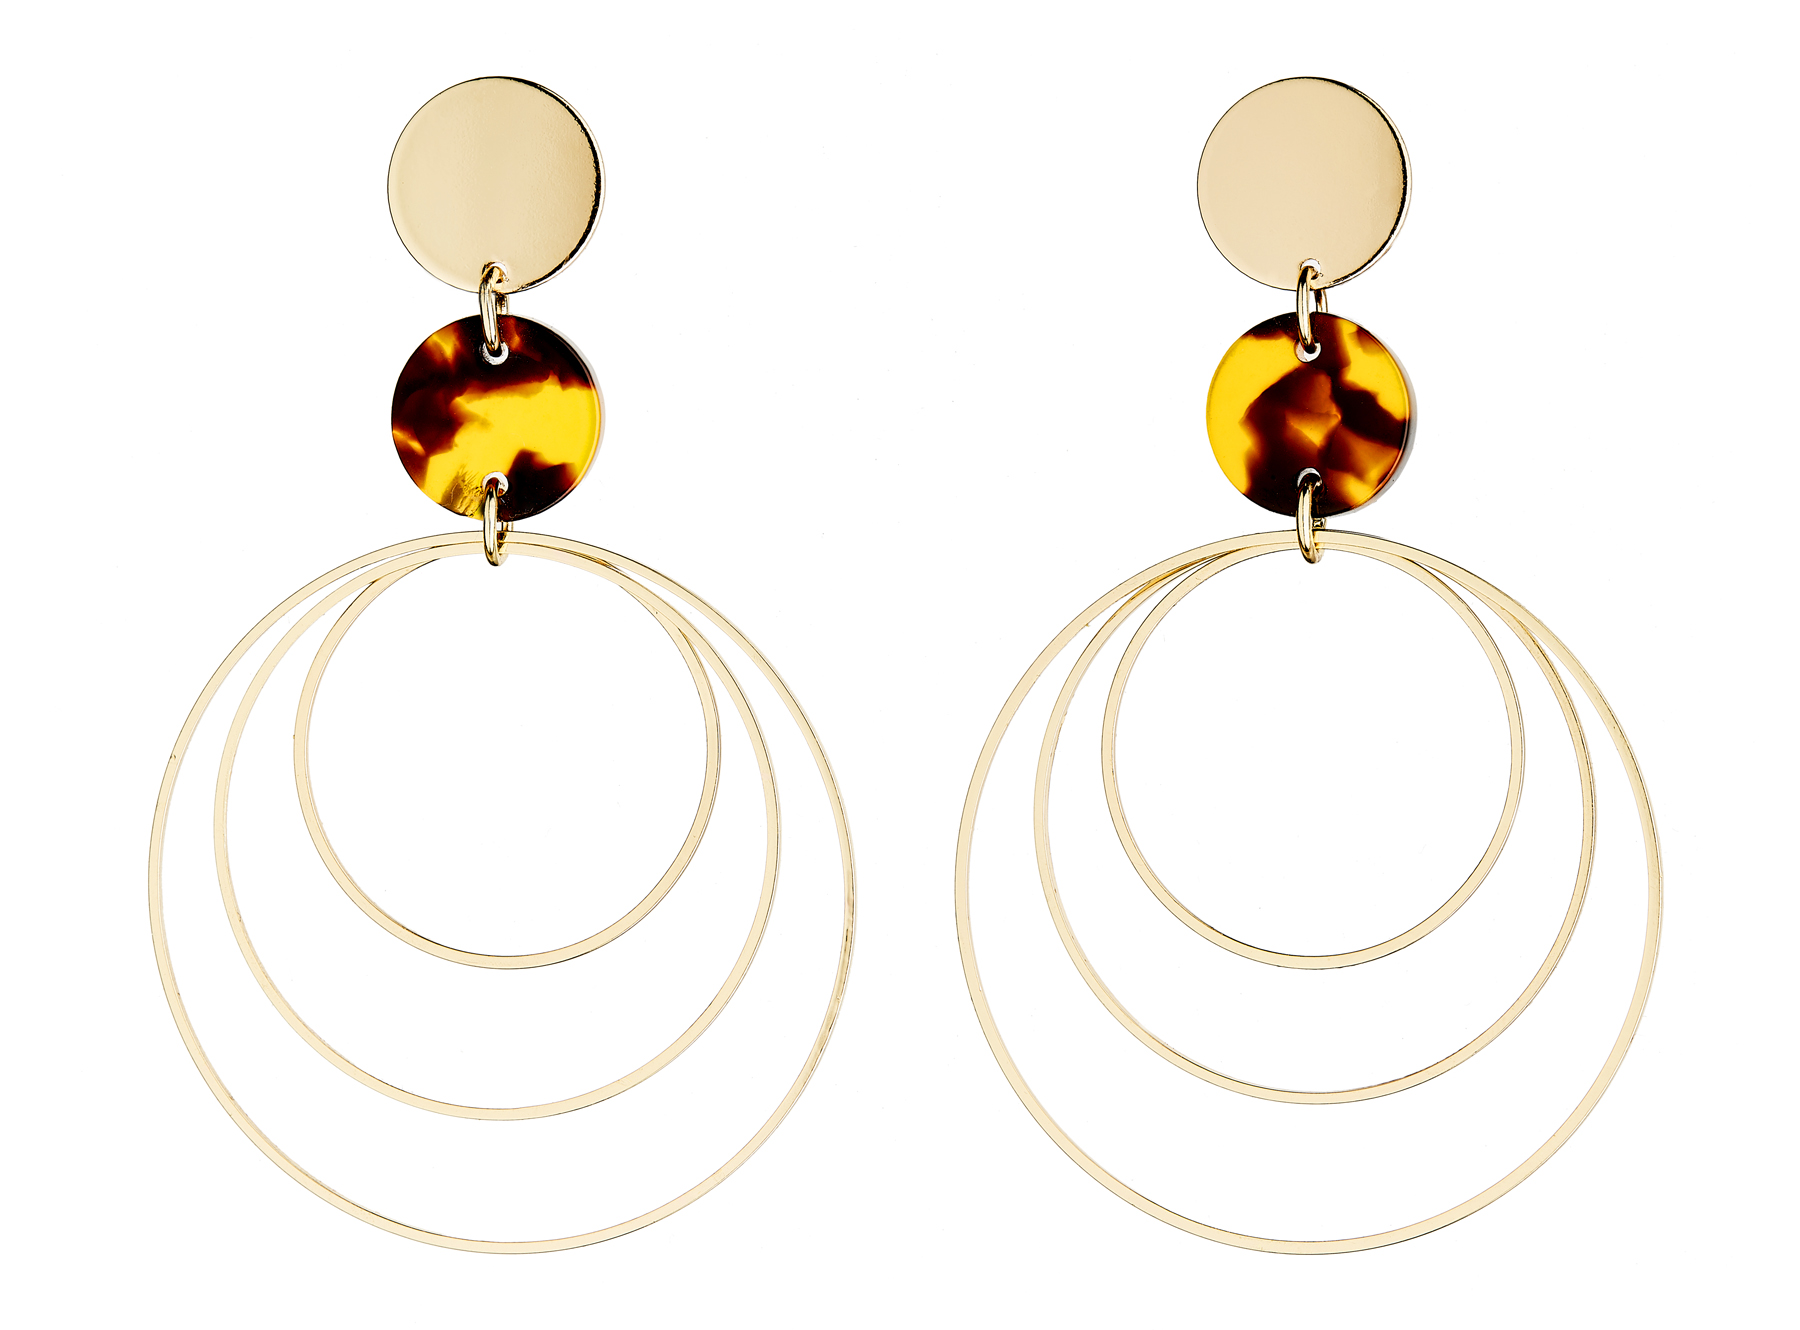 Clip On Hoop Earrings - Eme - gold earring with three hoops and brown tortoise shell acrylic